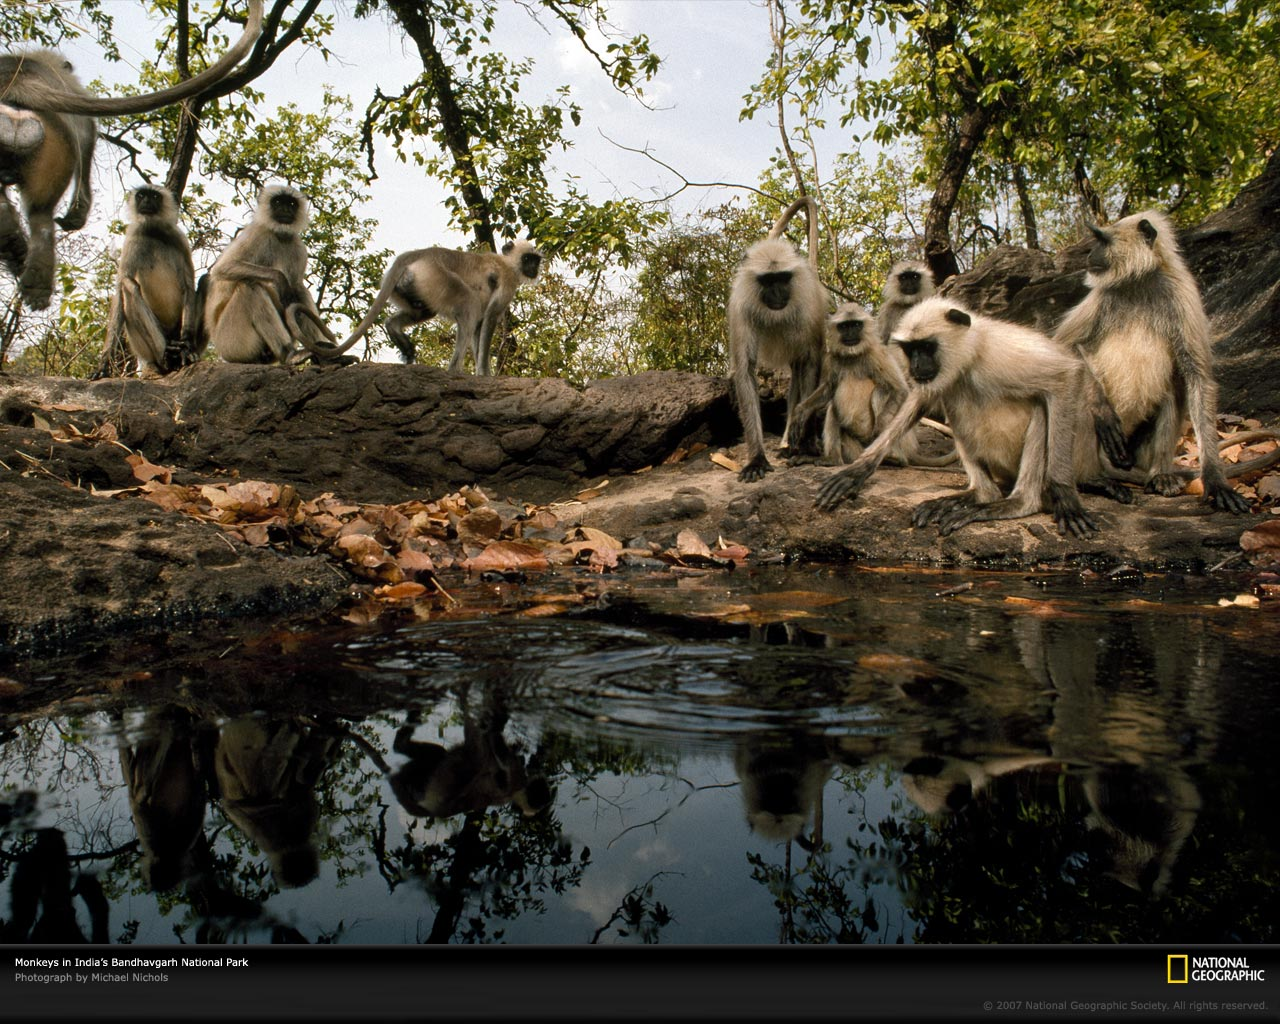 Bandhavgarh India  city photos gallery : National Geographic: Photo of the Day: 12/01/07